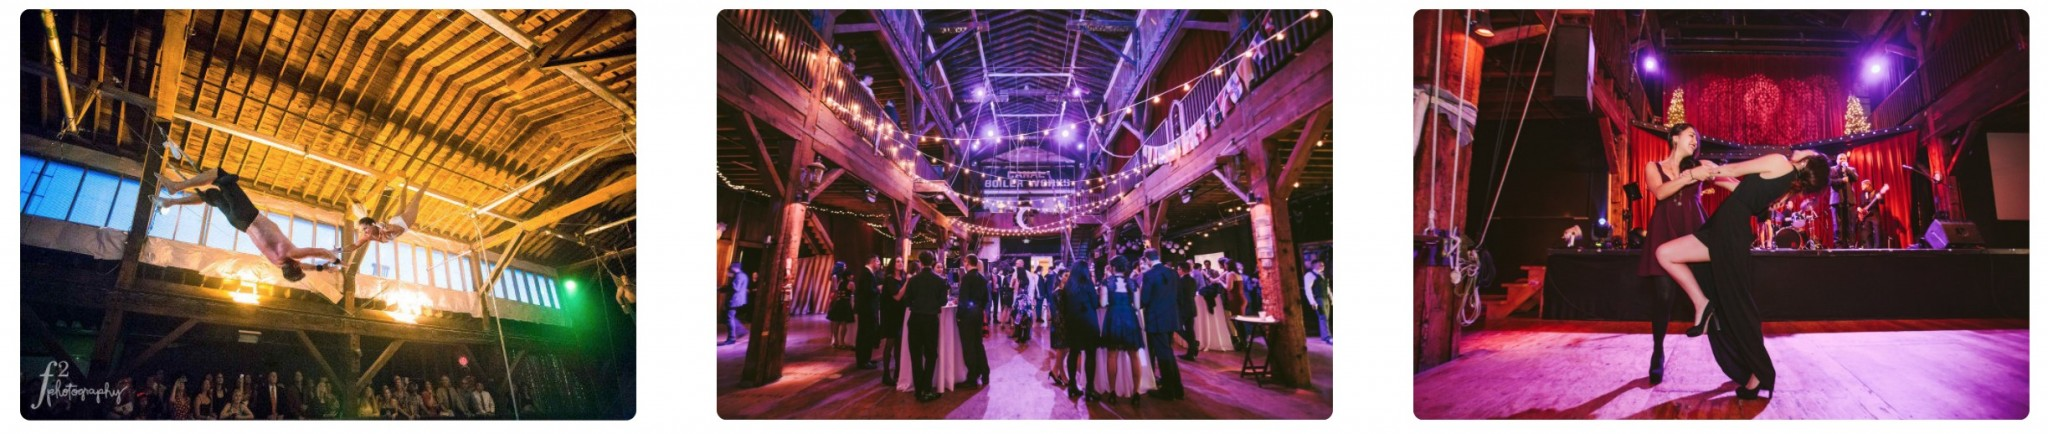 Emerald City Trapeze Arts Weddings and Events in Seattle